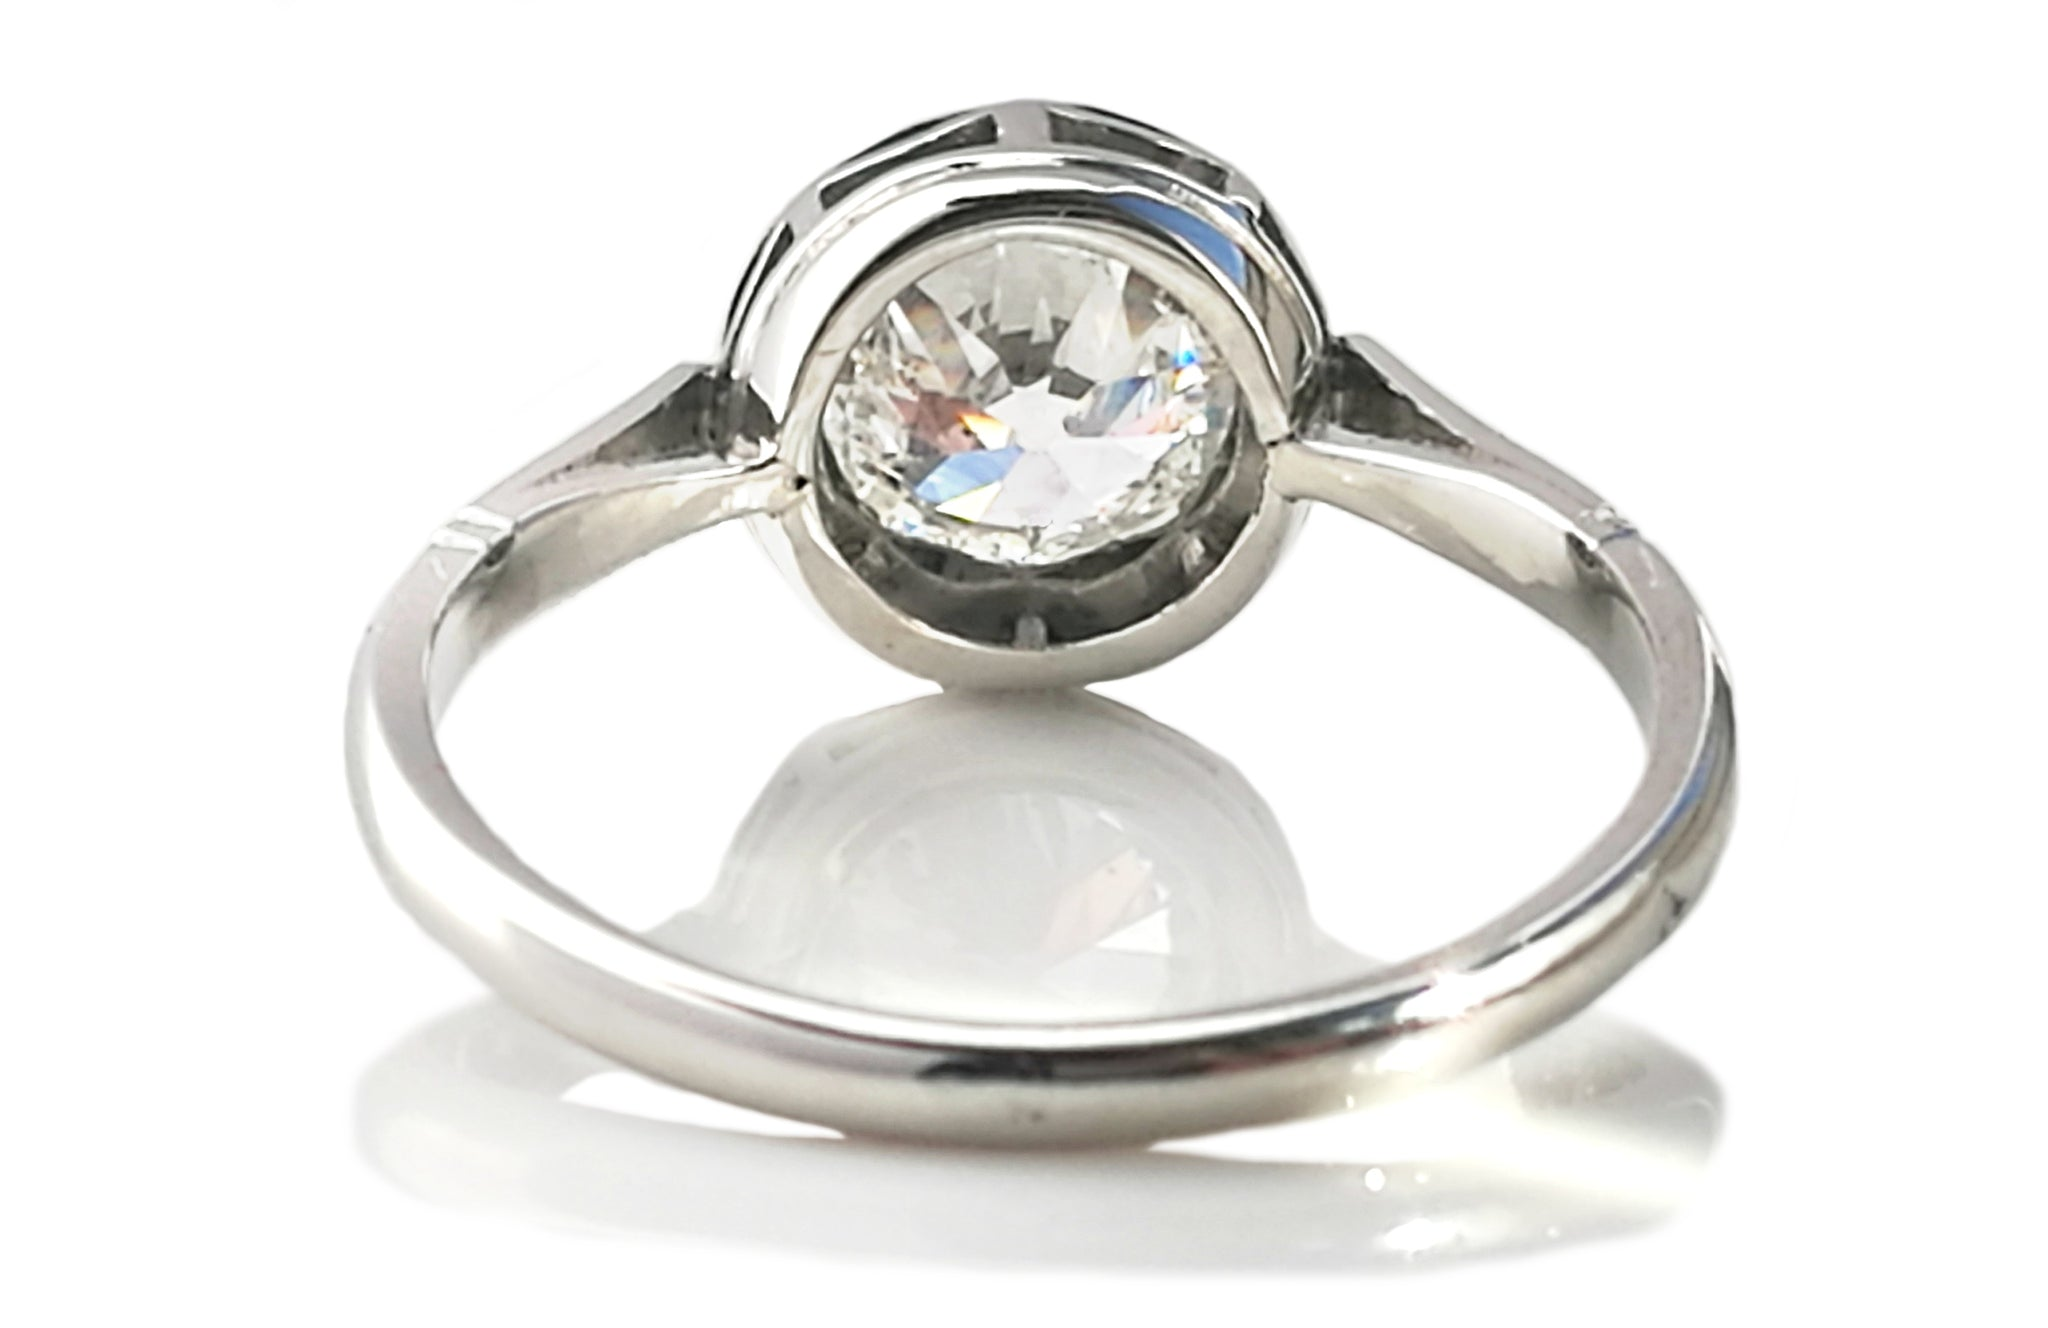 Antique Handmade French 1.50ct Old Cut Diamond Buttercup Engagement Ring in Platinum